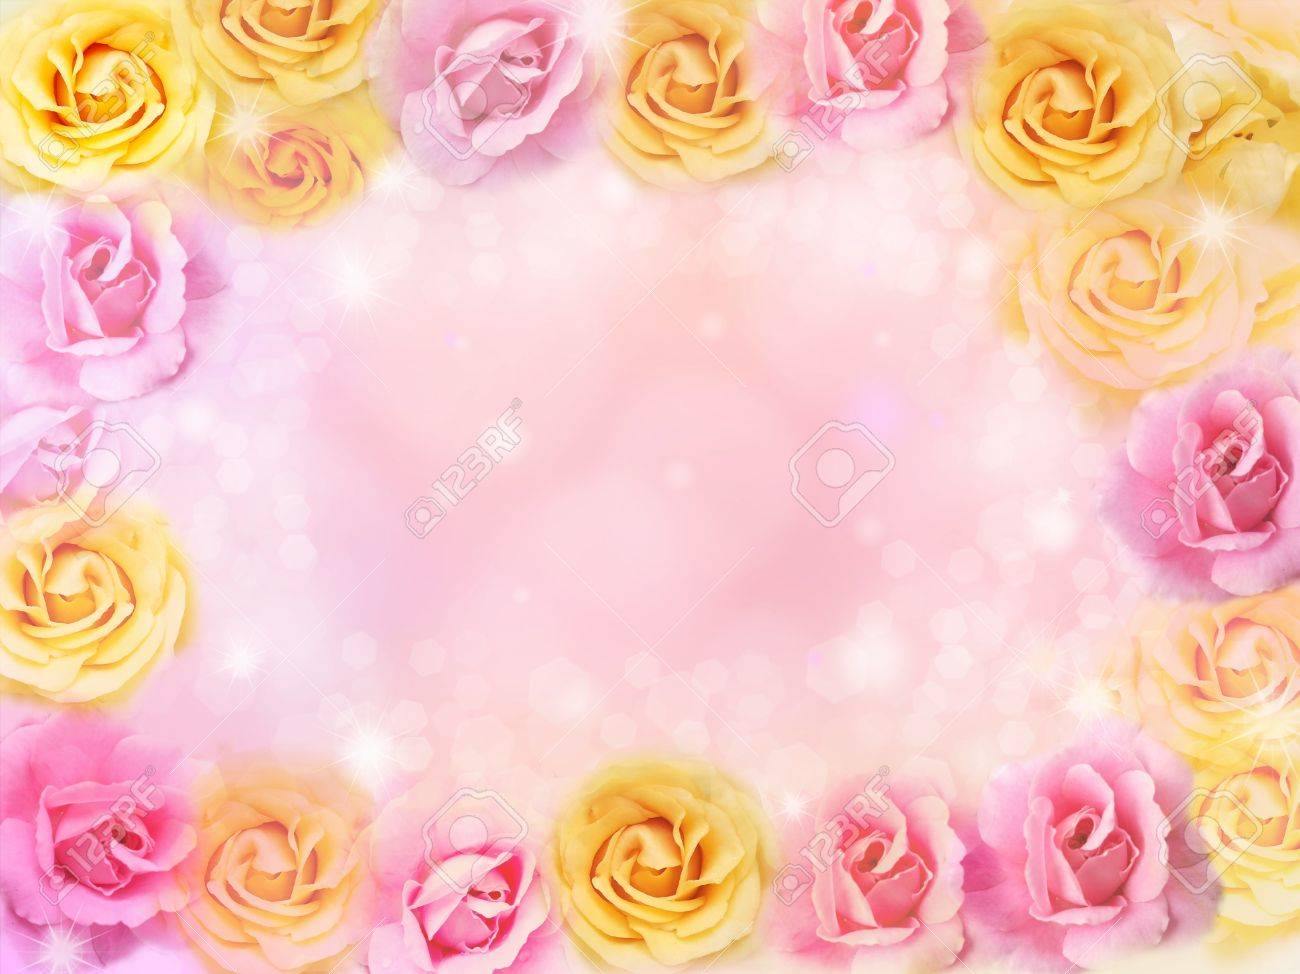 Beautiful Pink And Yellow Roses Flower Border And Frame Background